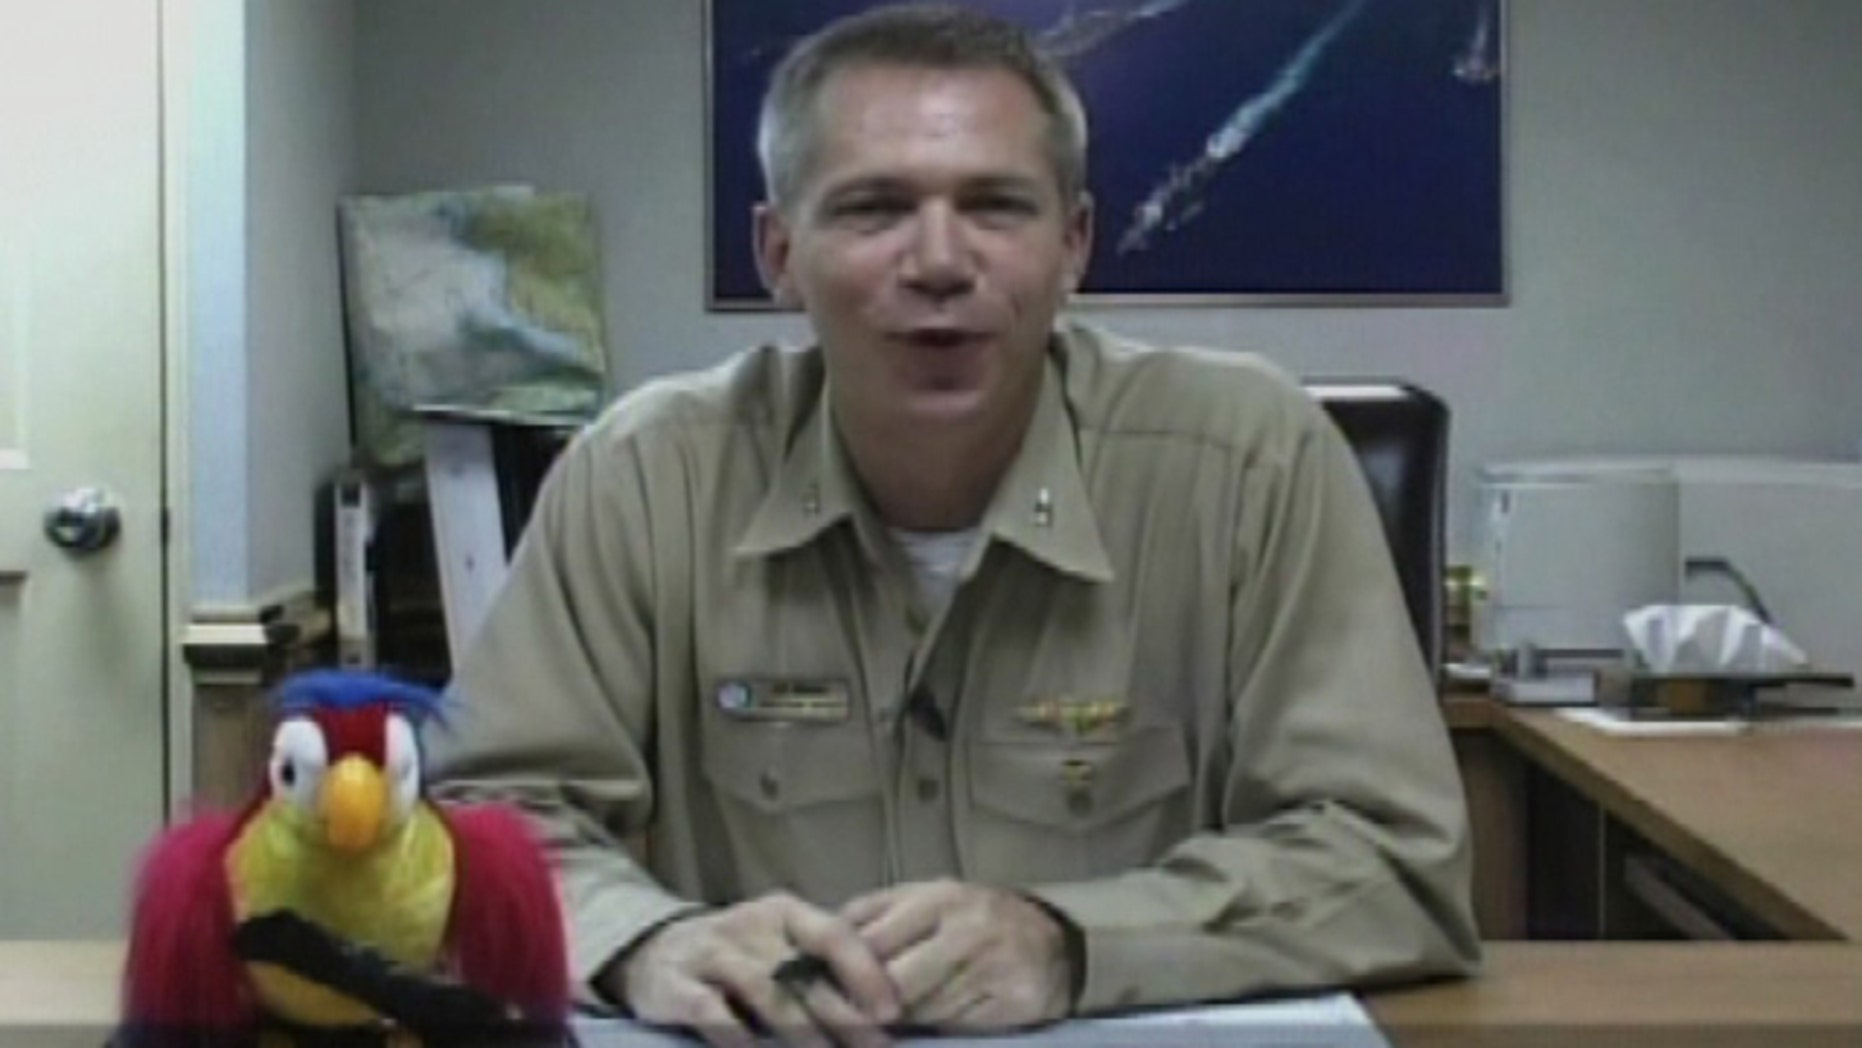 FILE: Capt. Owen Honors of the USS Enterprise aircraft carrier is pictured in an unidentified location in this still image taken from a video.